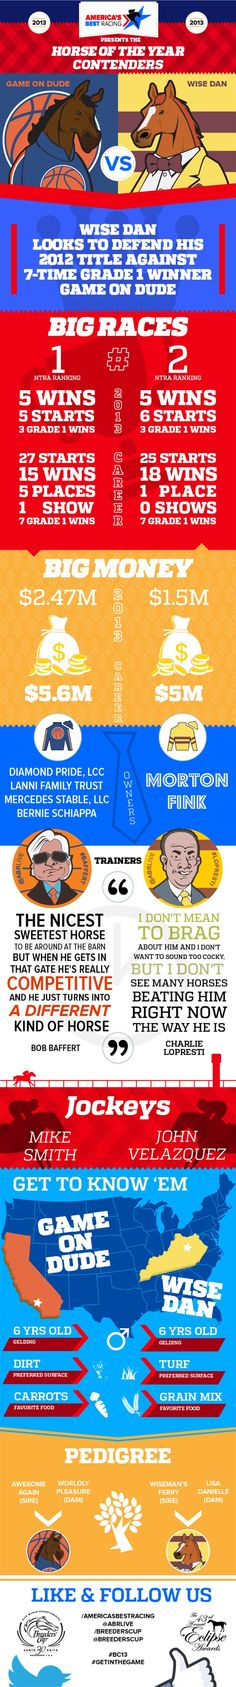 Horse of the Year infographic: Wise Dan vs. Game On Dude.